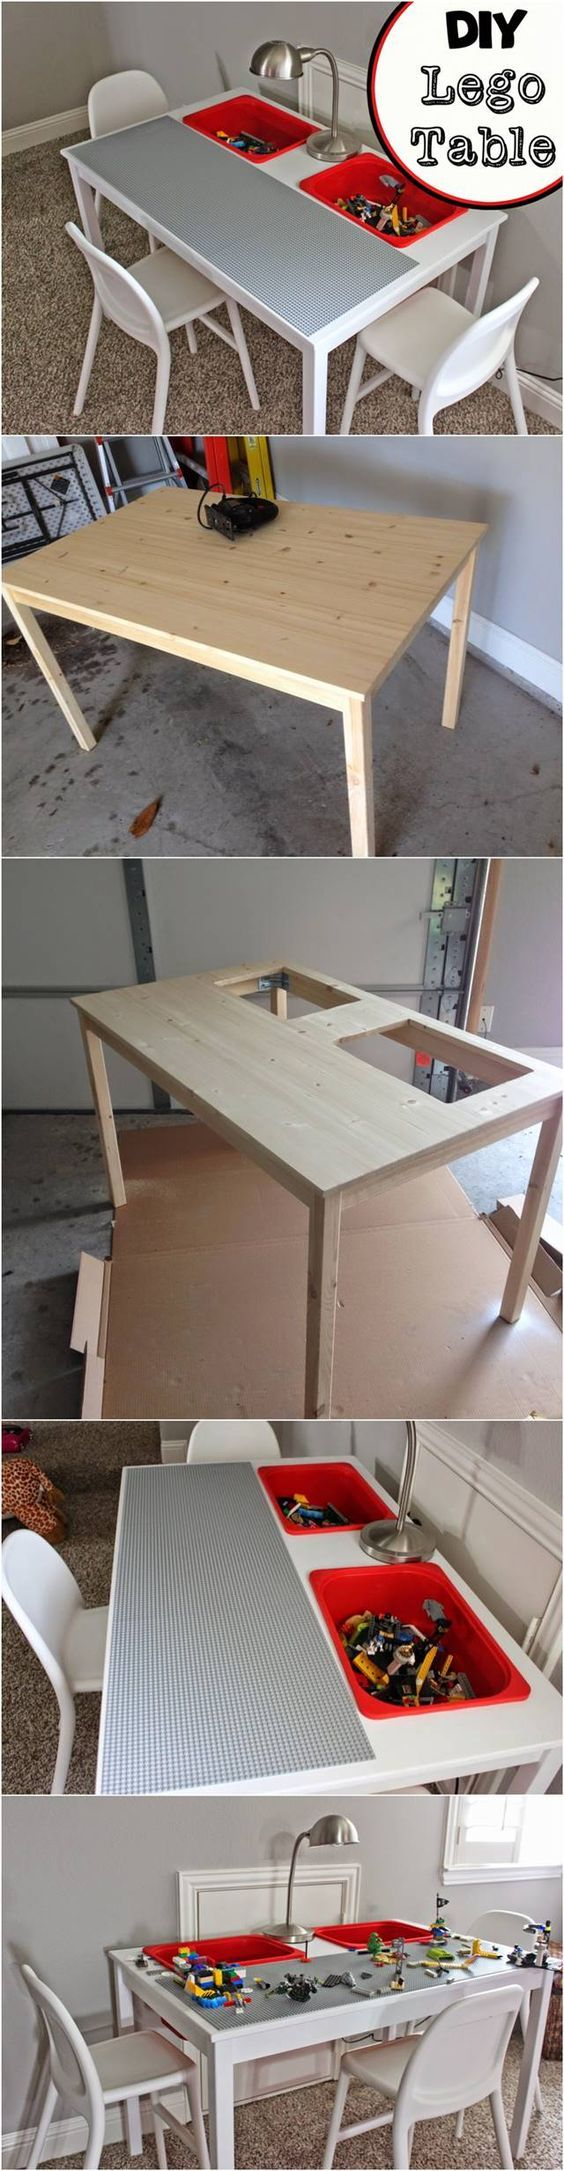 17 best ideas about lego table ikea on pinterest diy for Transform ikea furniture